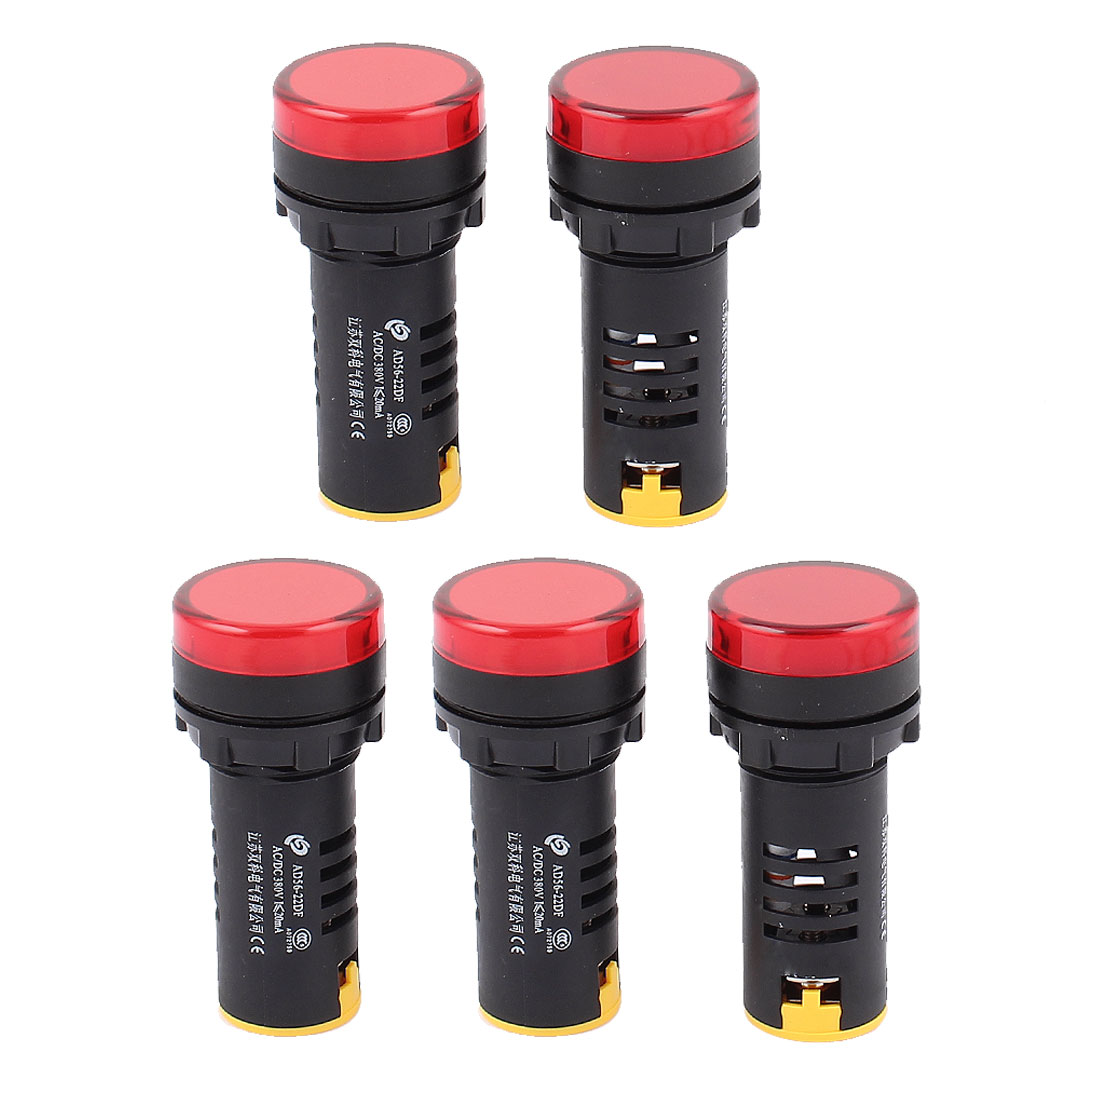 5Pcs AC 380V Energy Saving Red LED Indicator Pilot Signal Light Lamp